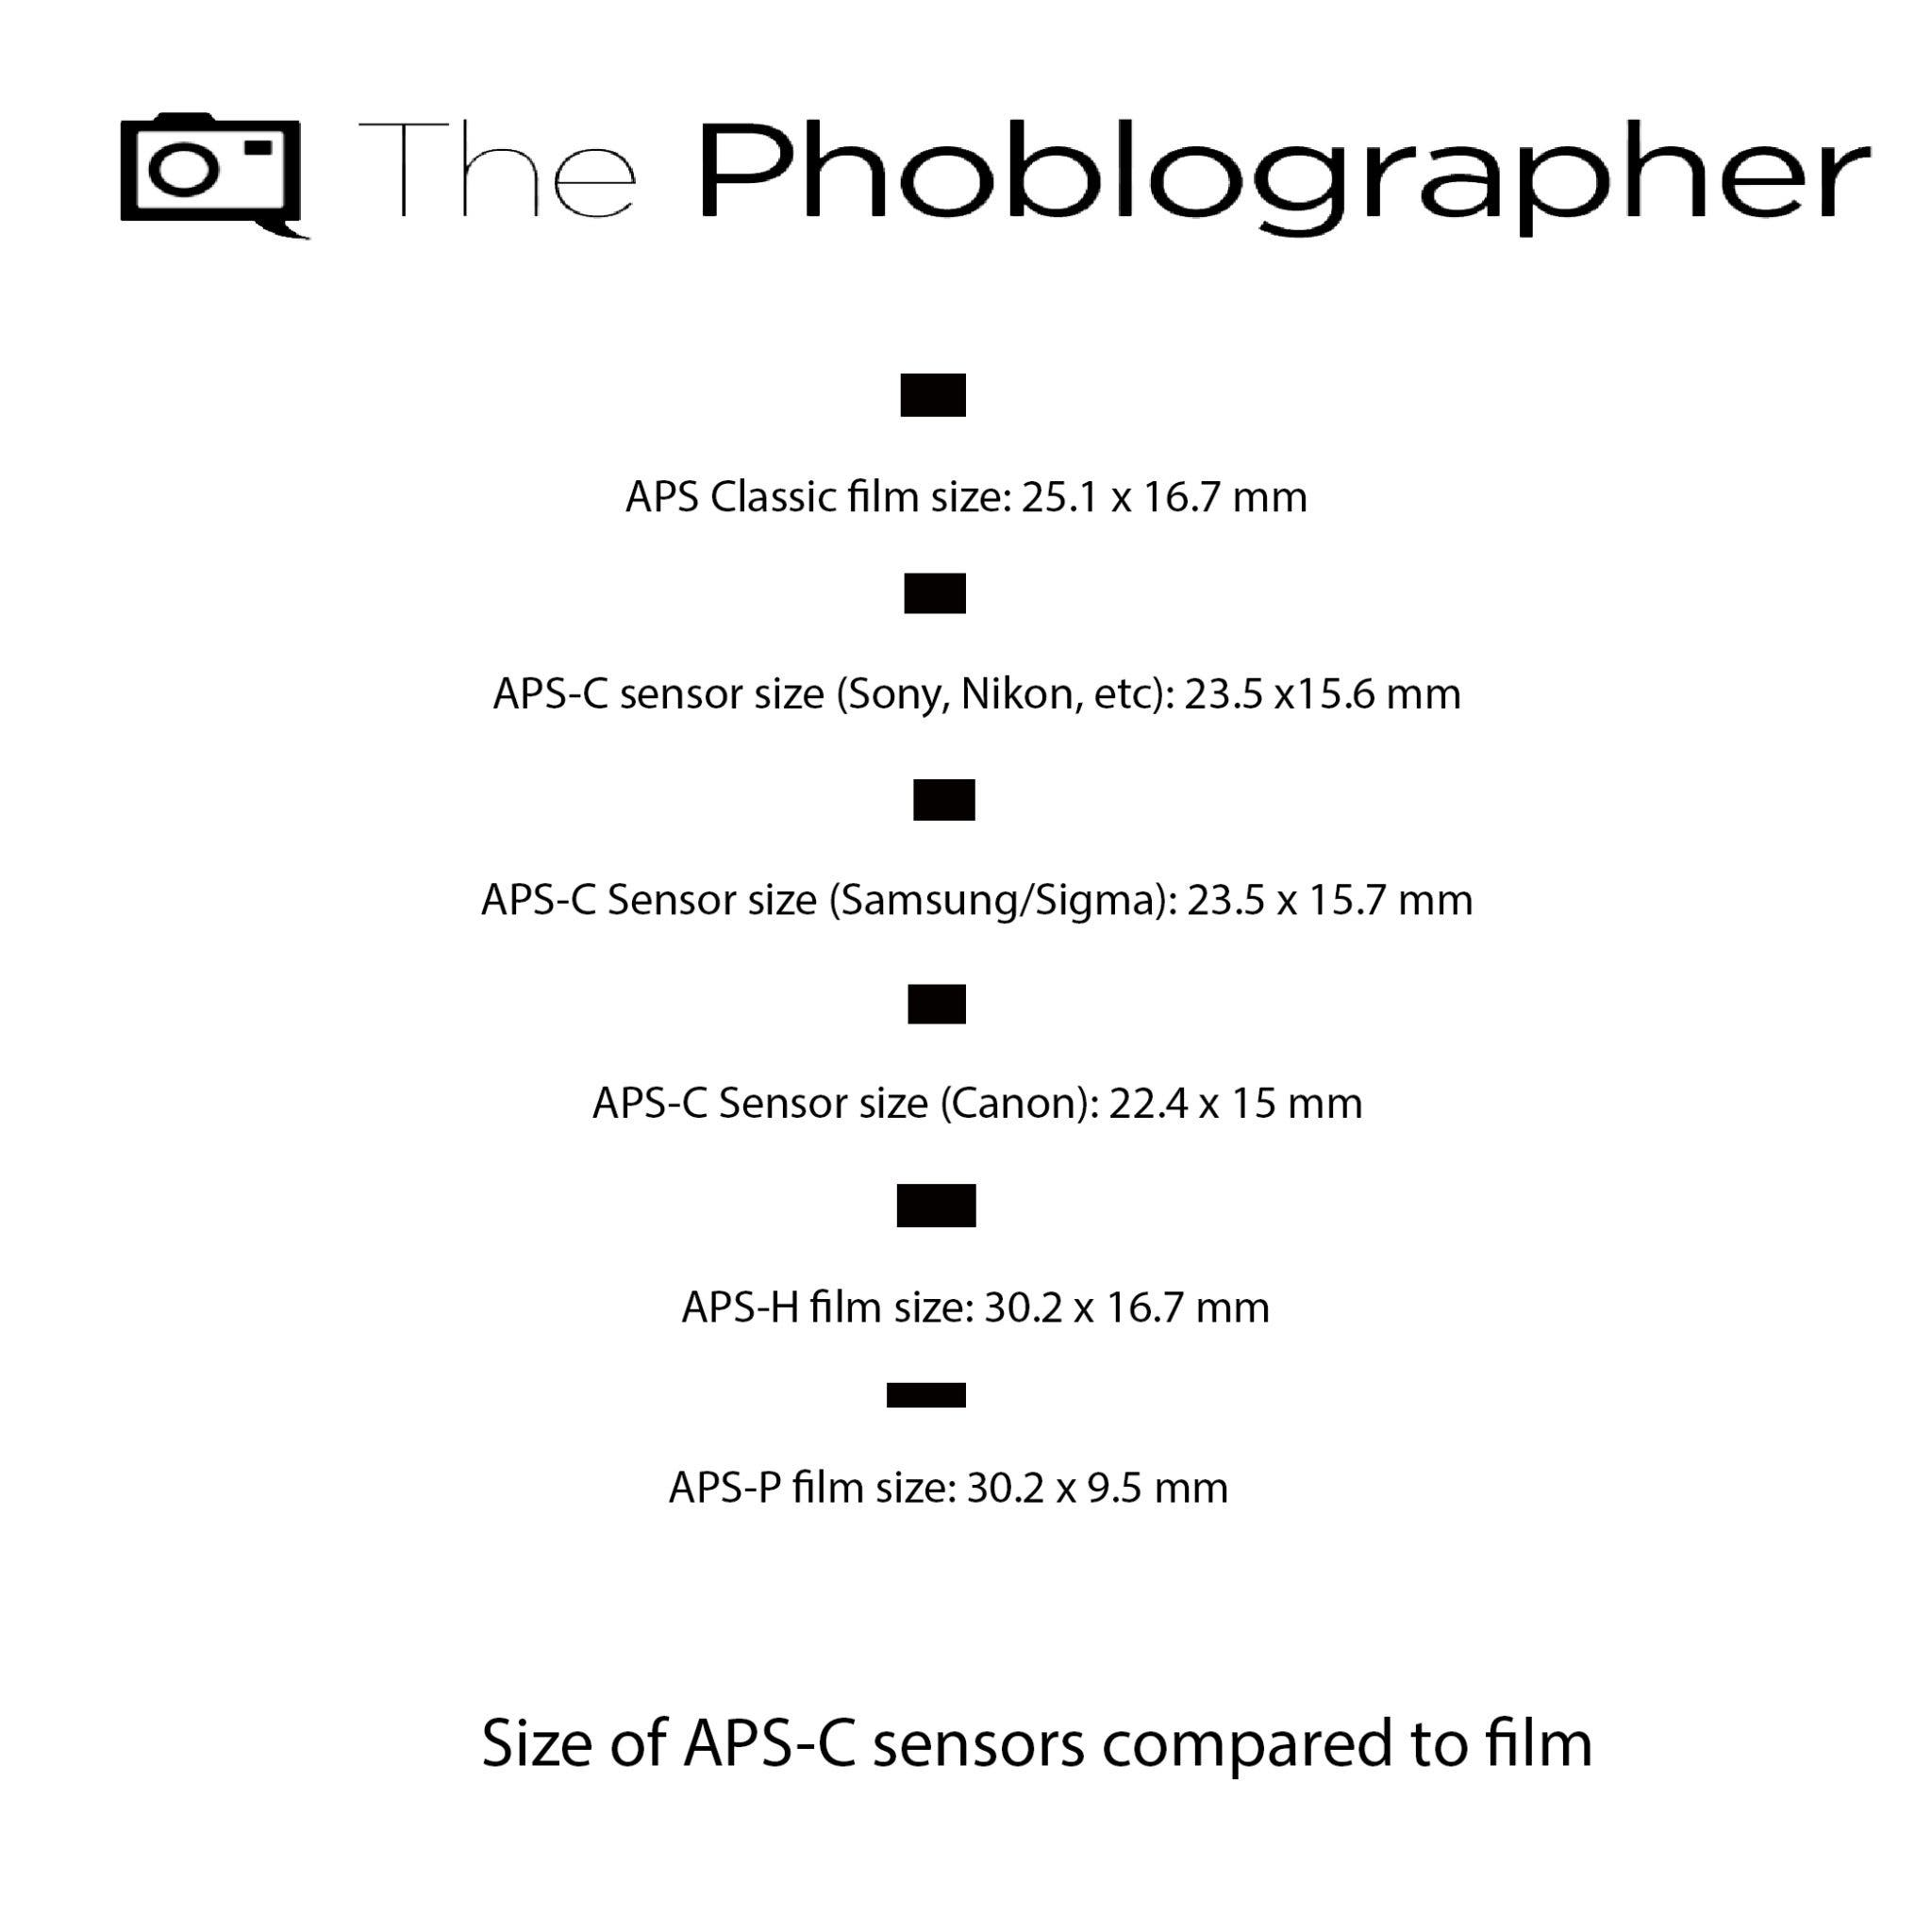 The Phoblographer APS film chart